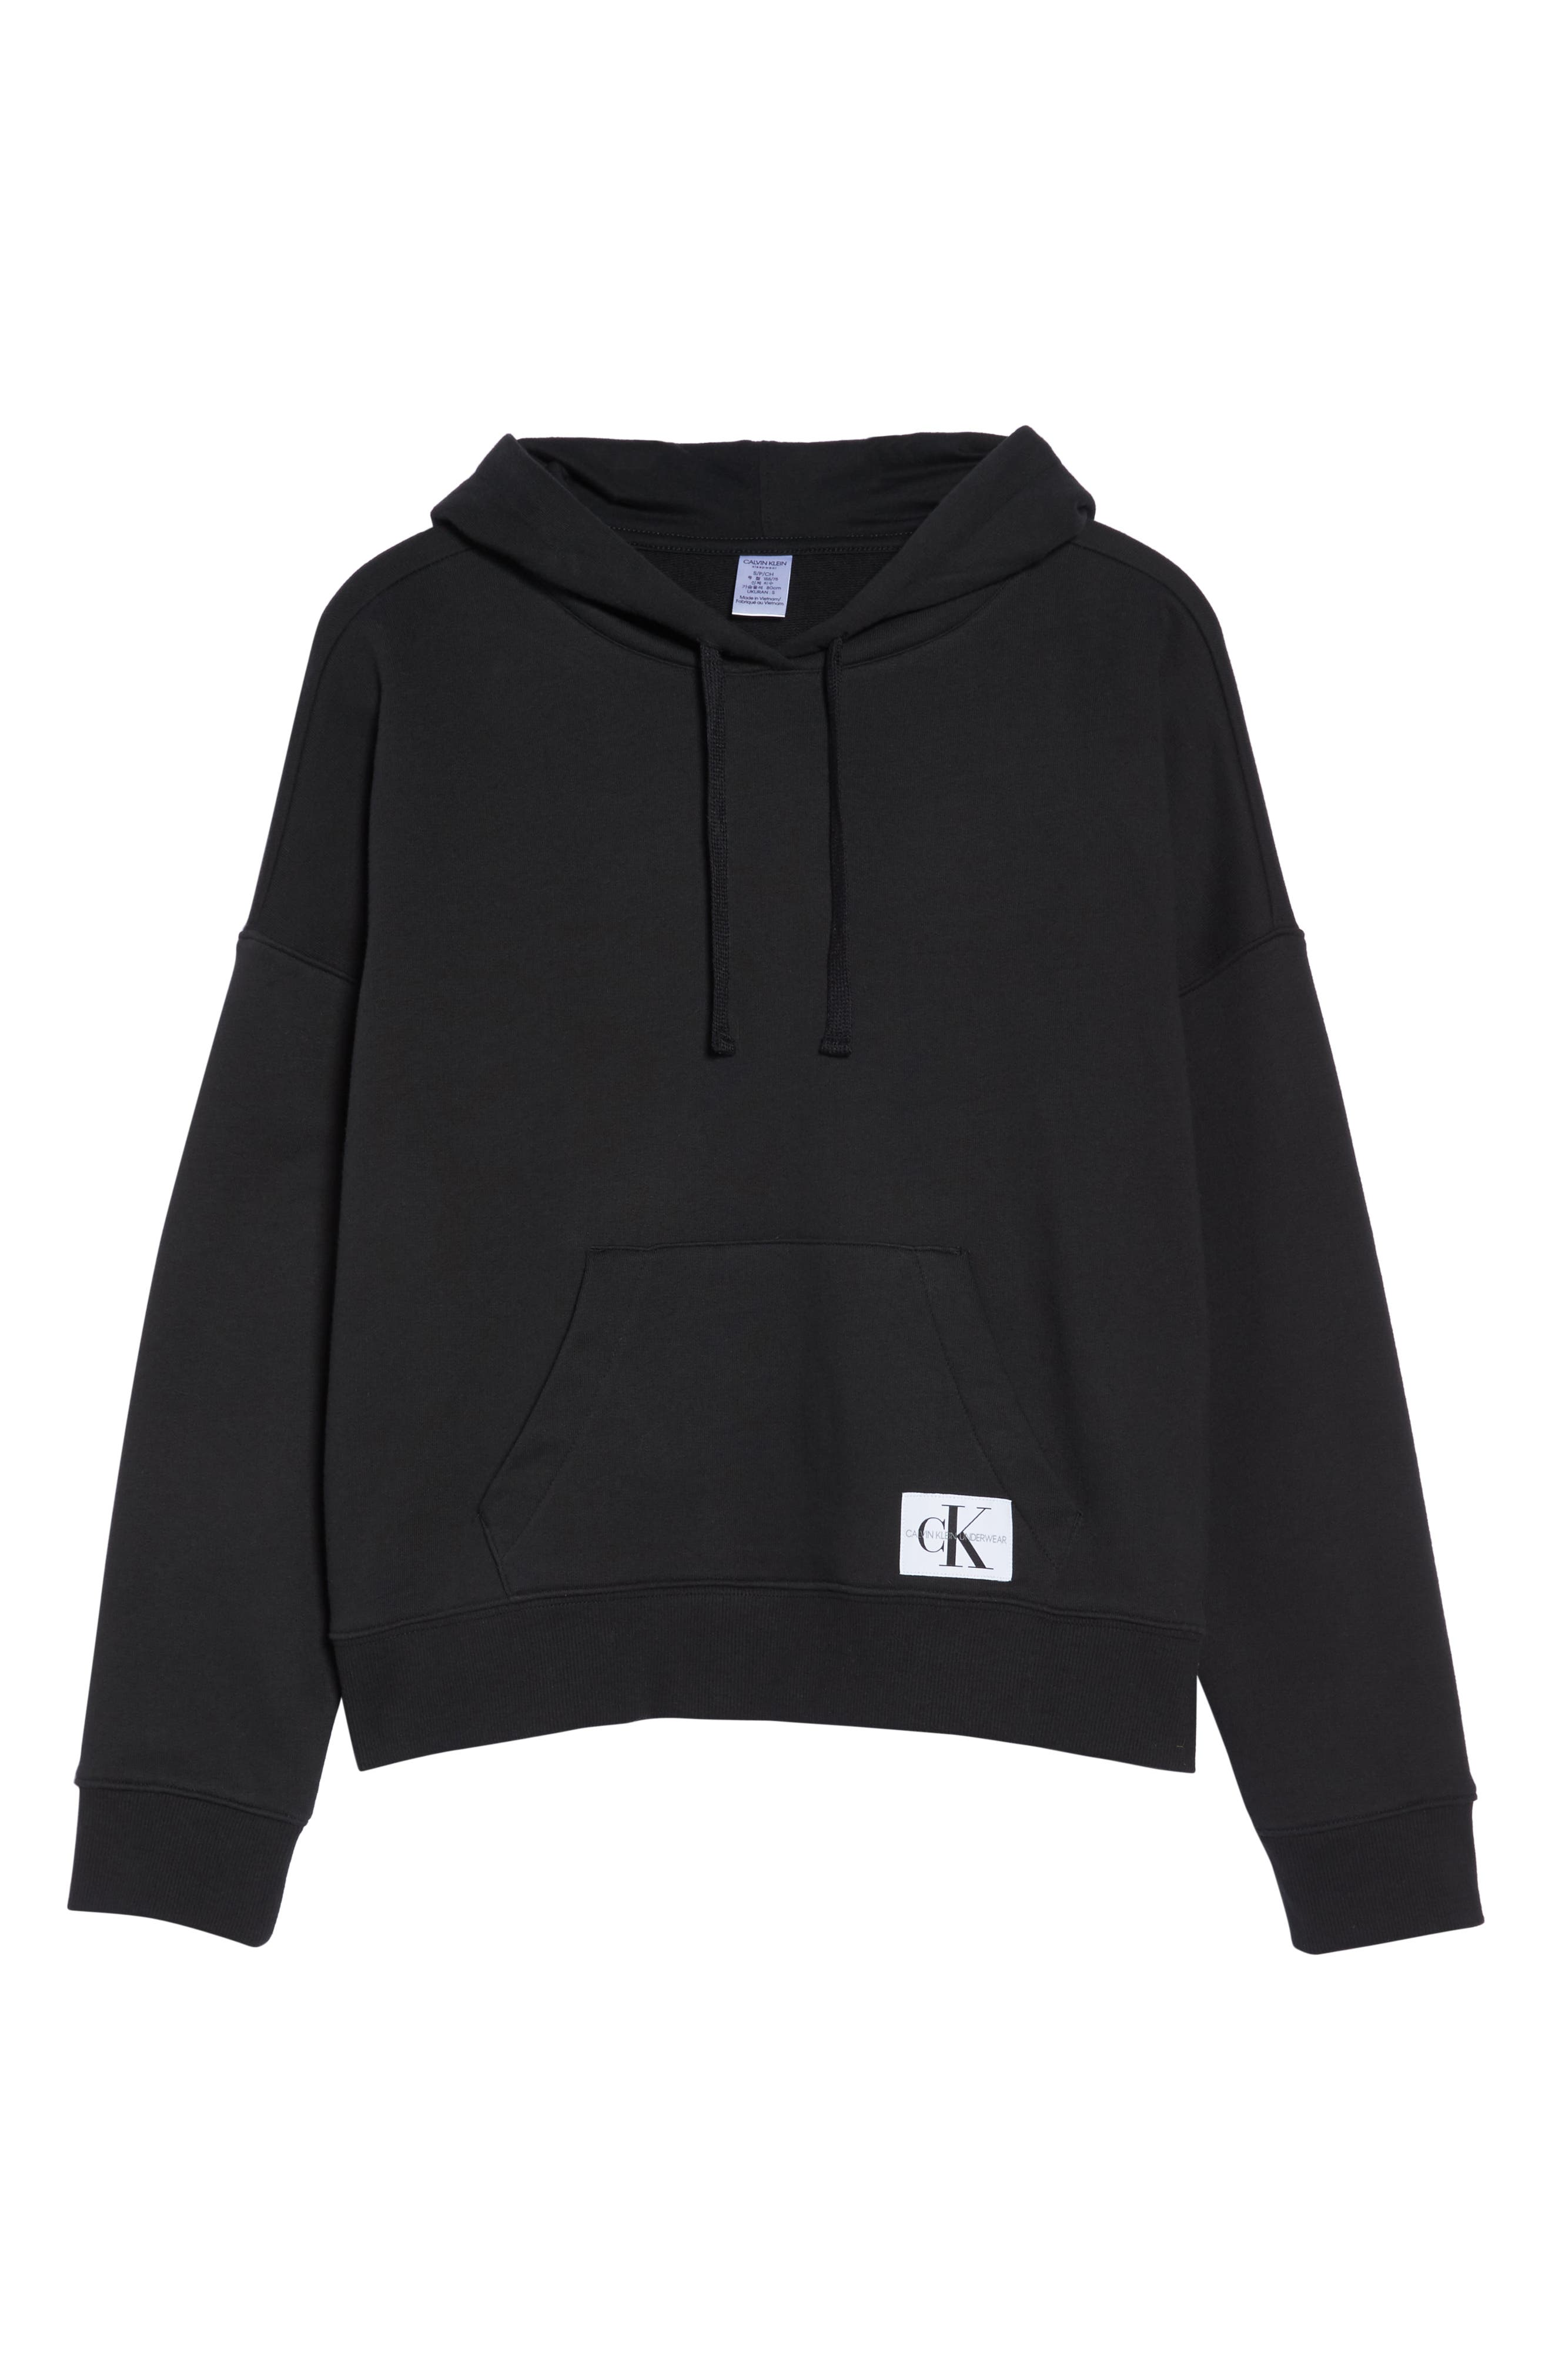 CALVIN KLEIN,                             Monogram Lounge Hoodie,                             Alternate thumbnail 6, color,                             001